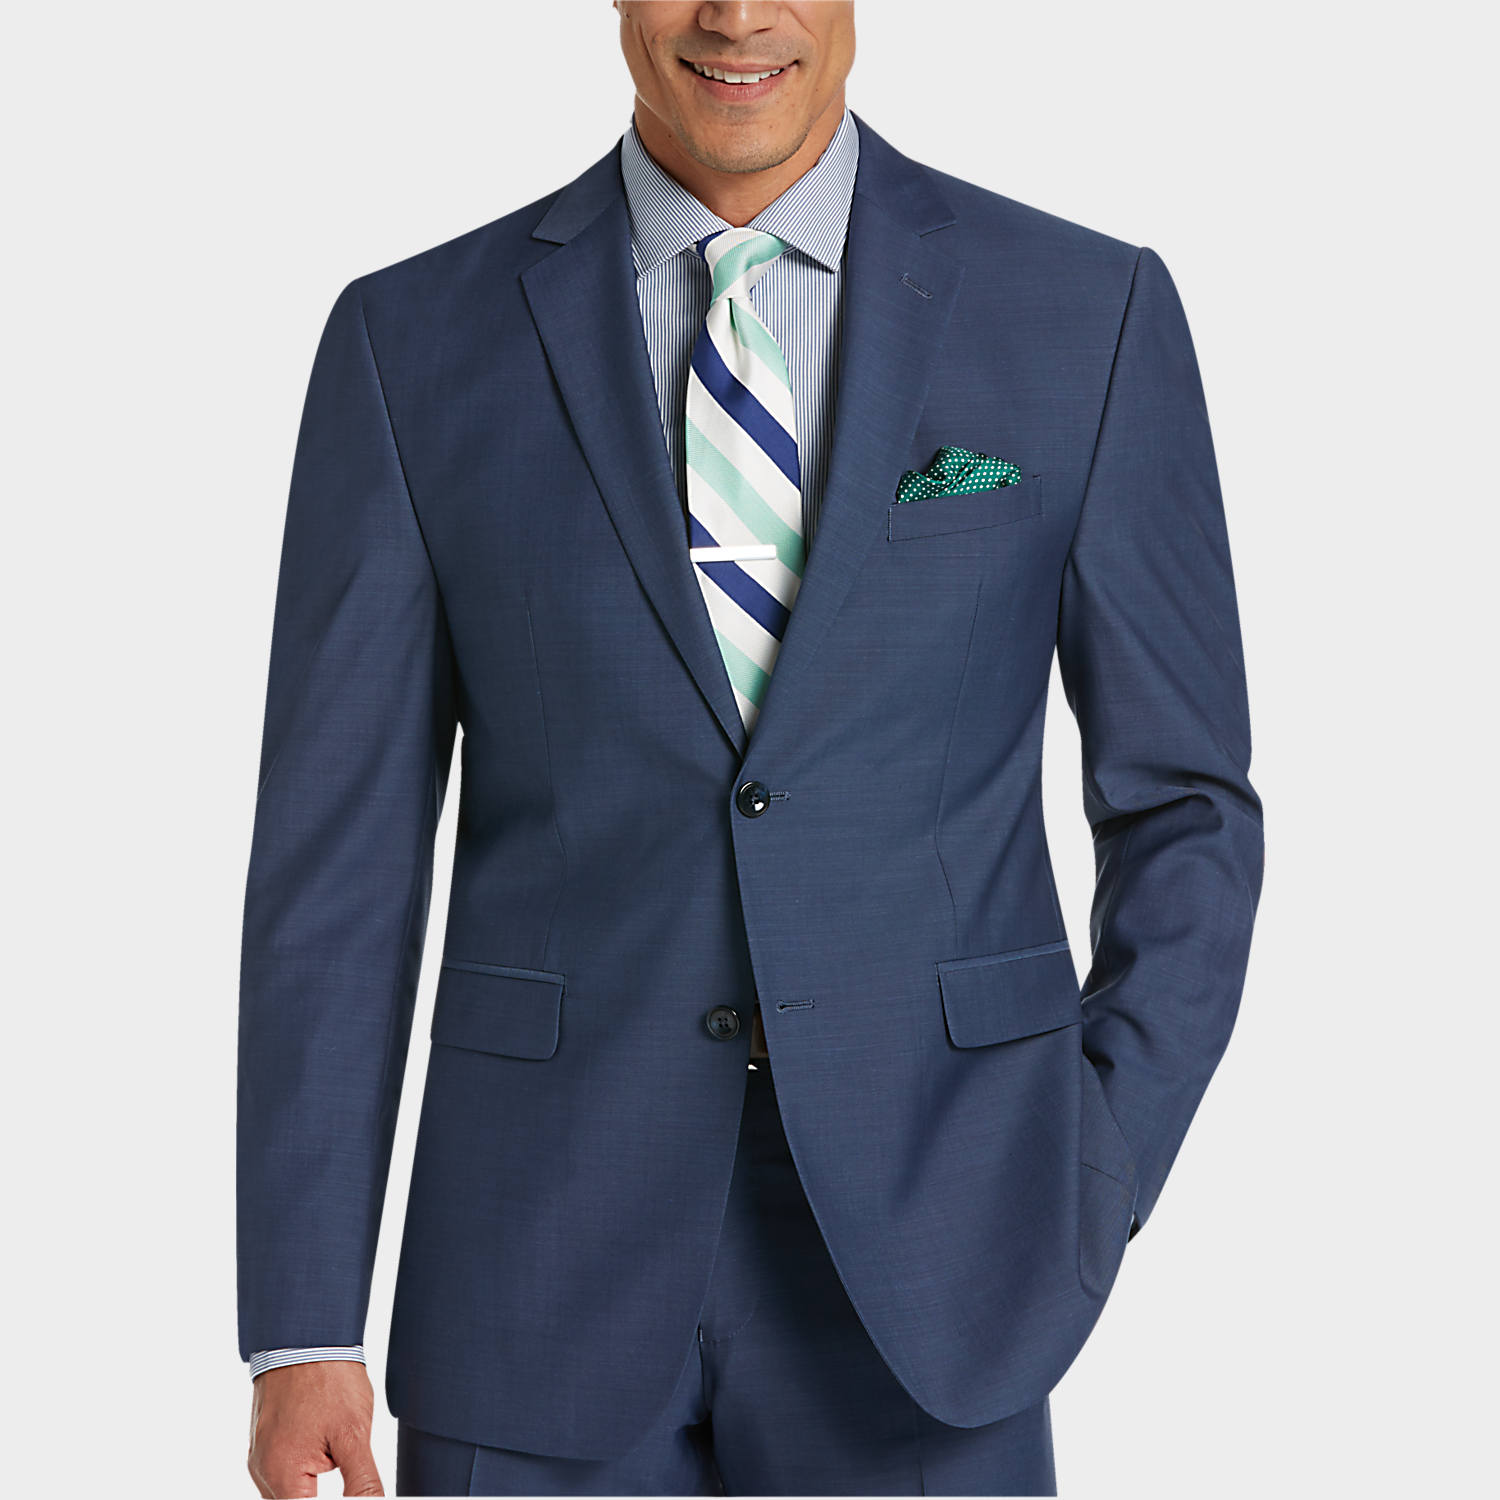 Getting all things right in men's suits